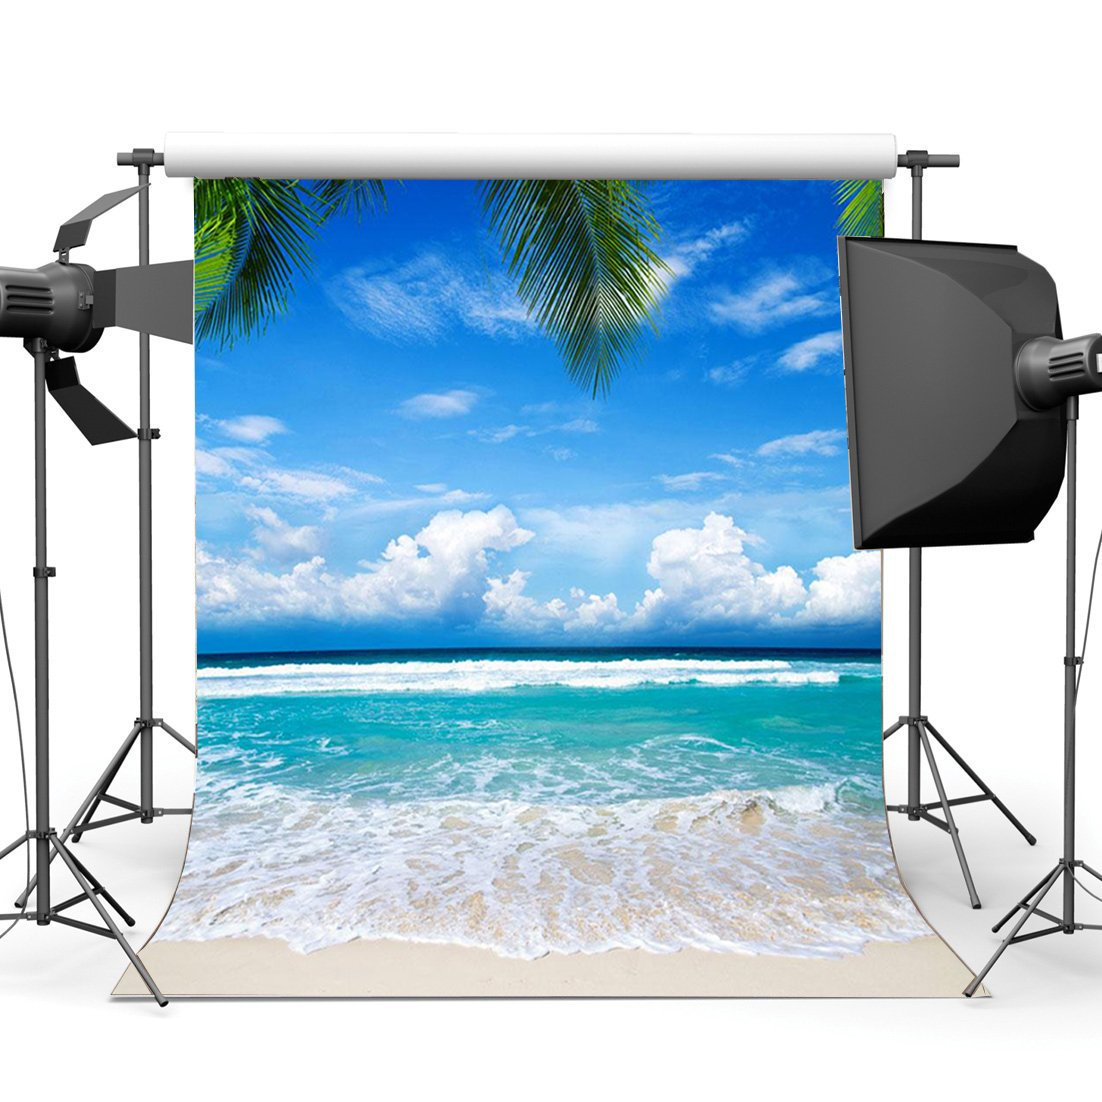 Seaside Sand Beach Backdrop Blue Sky White Cloud Nature Romantic Summer Holiday Journey Ocean Sailing Background-in Photo Studio Accessories from Consumer Electronics